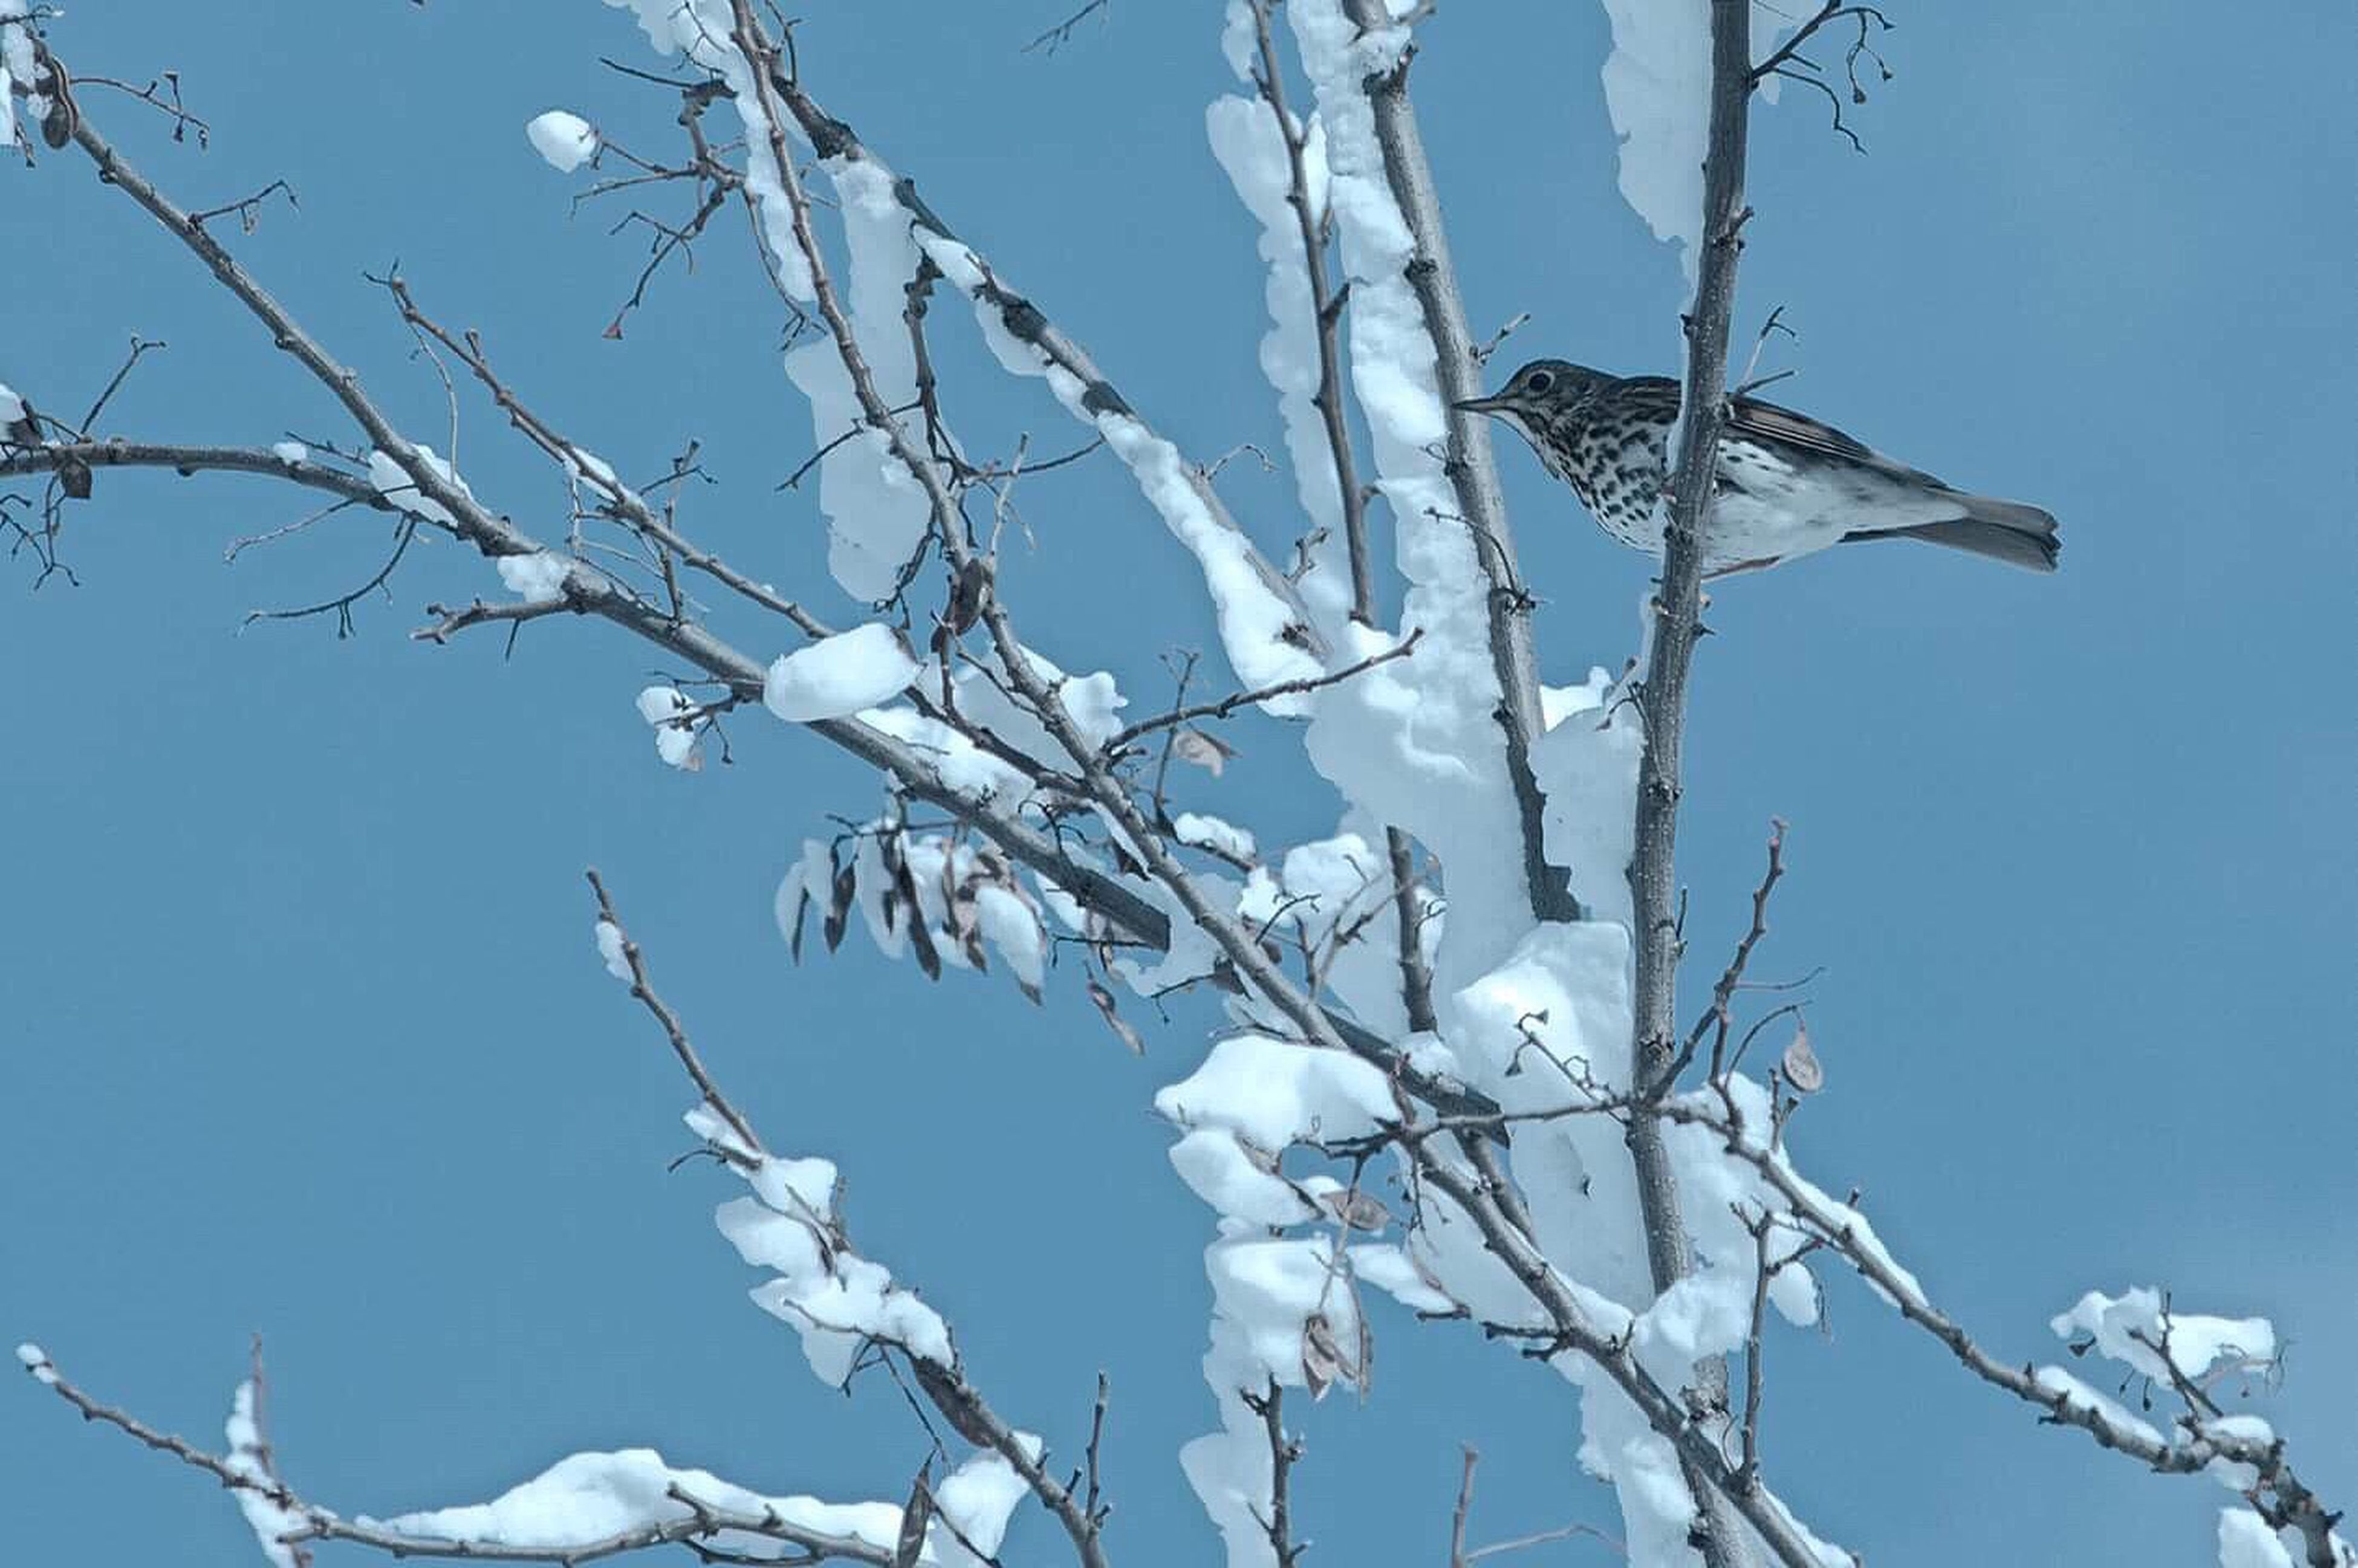 tree, clear sky, blue, low angle view, branch, winter, nature, bird, cold temperature, snow, outdoors, sky, day, no people, beauty in nature